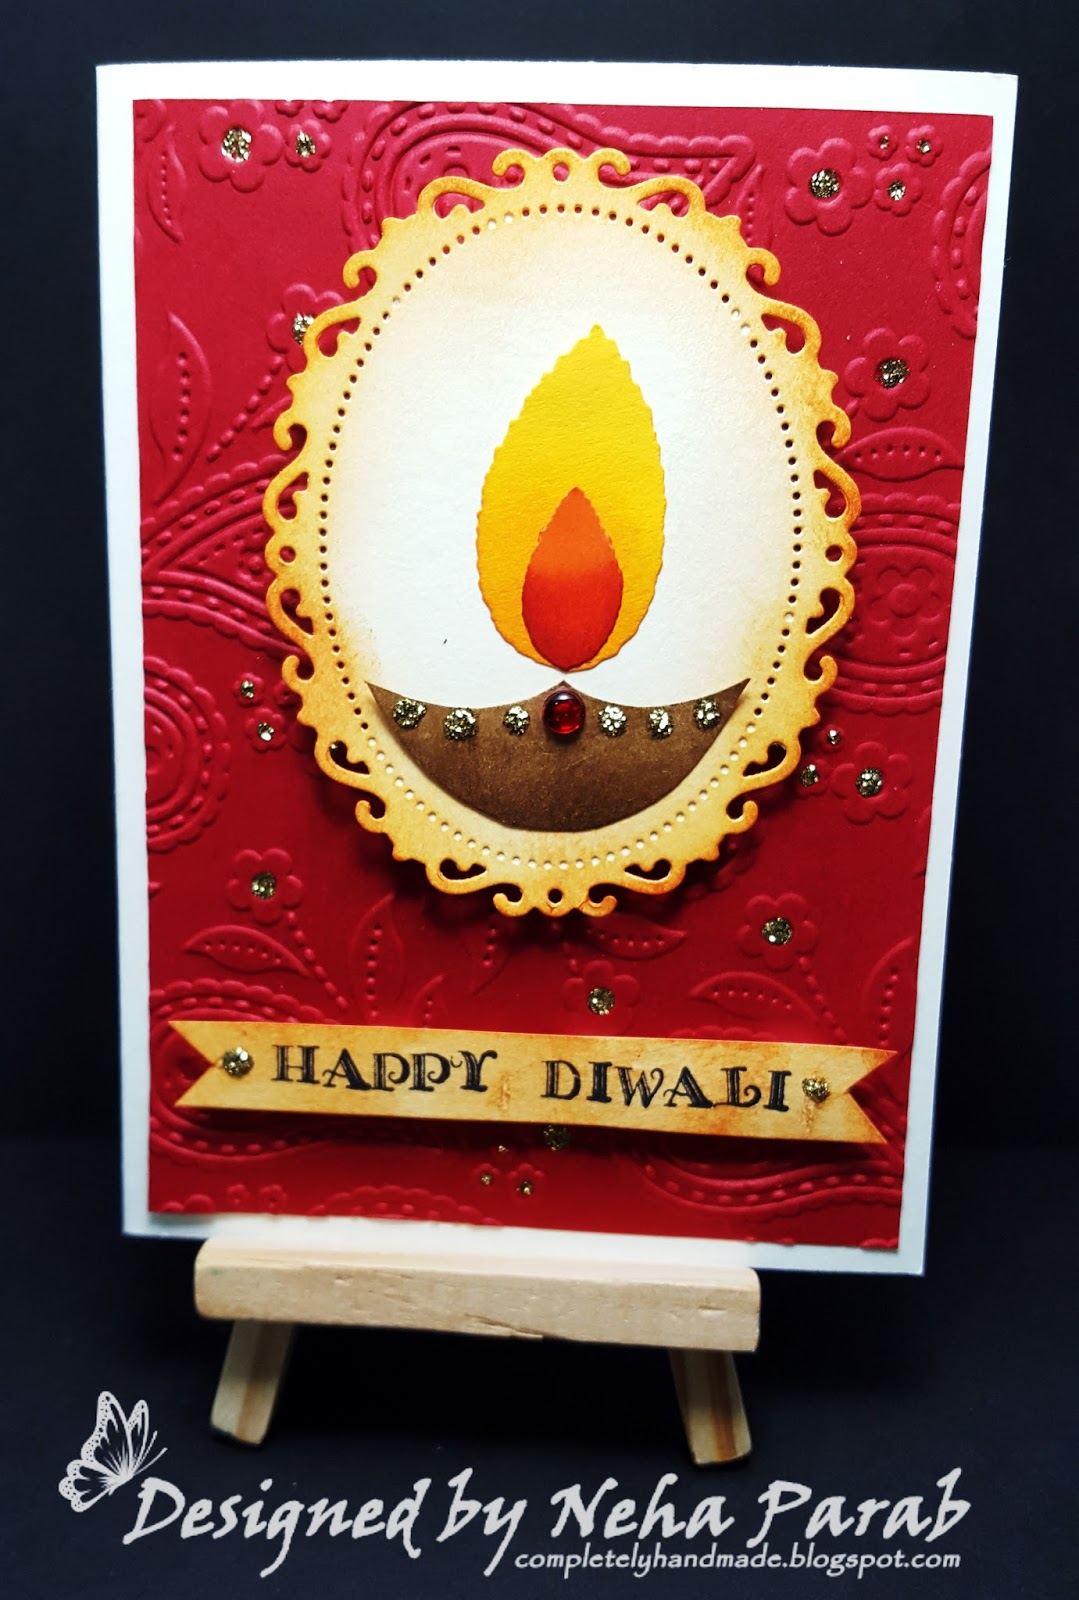 completely handmade diwali cards  day 3